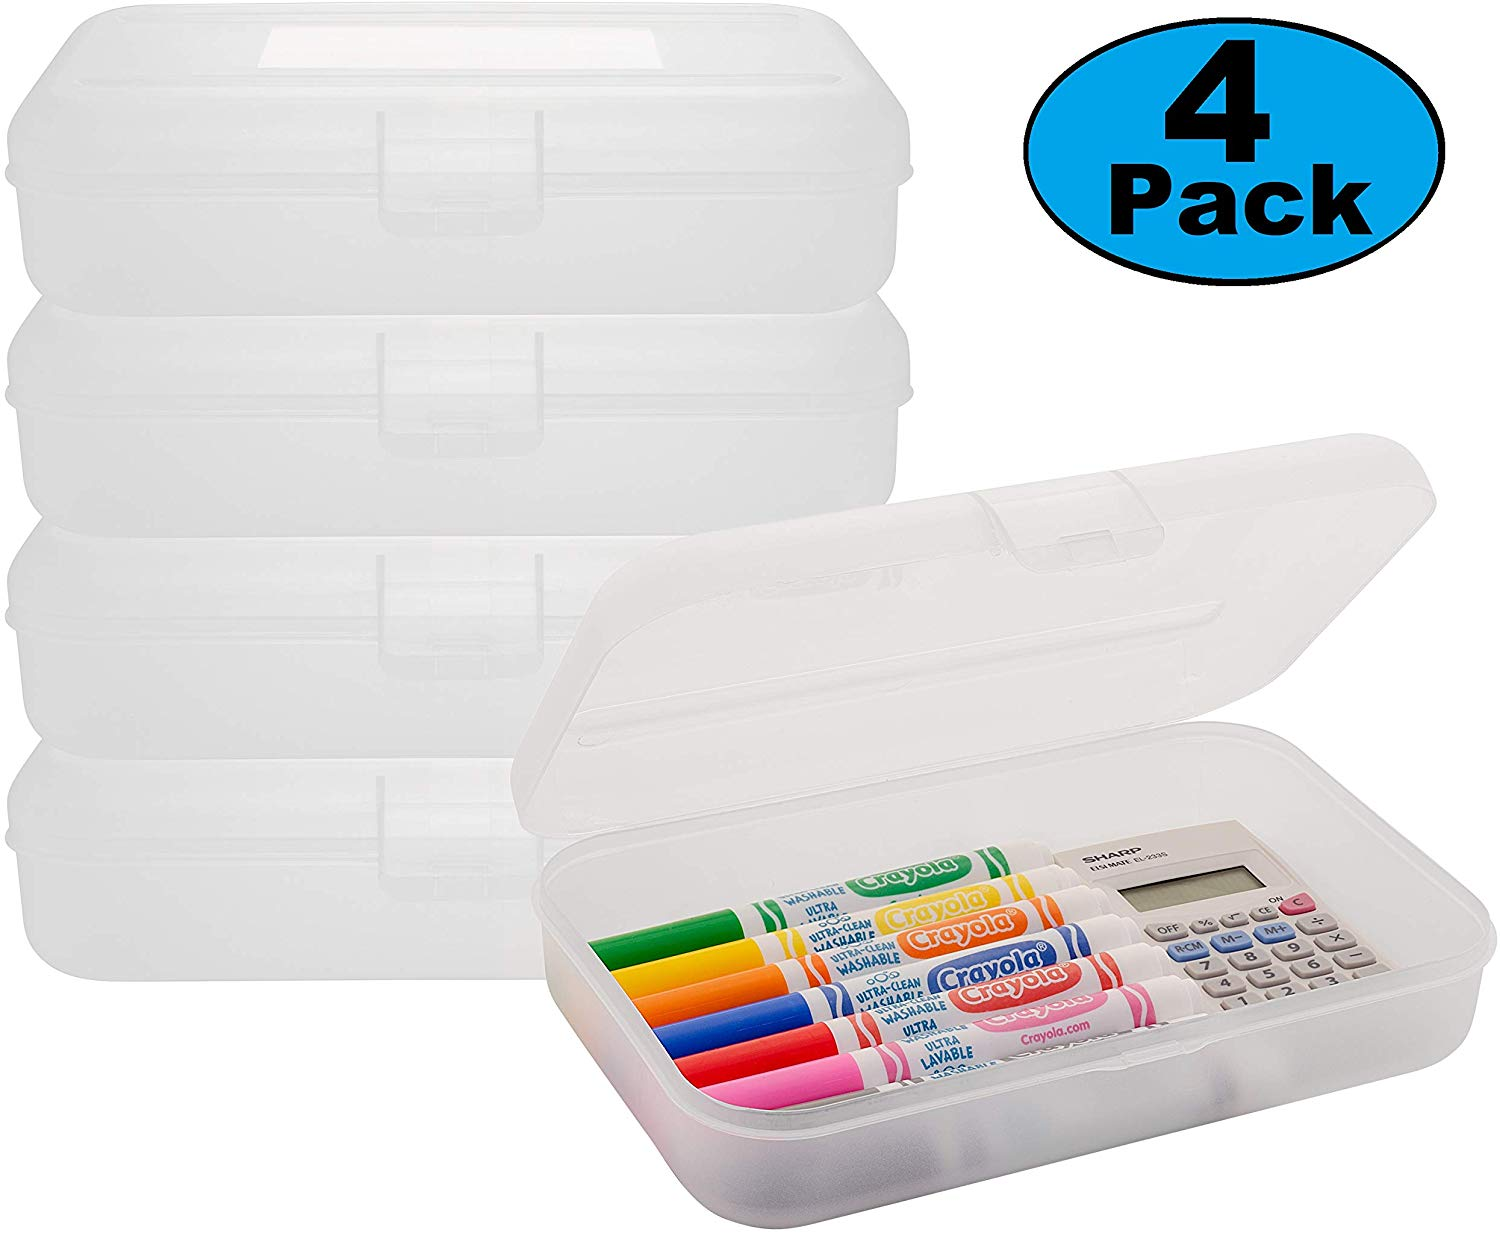 Small Frosted Organizer Box